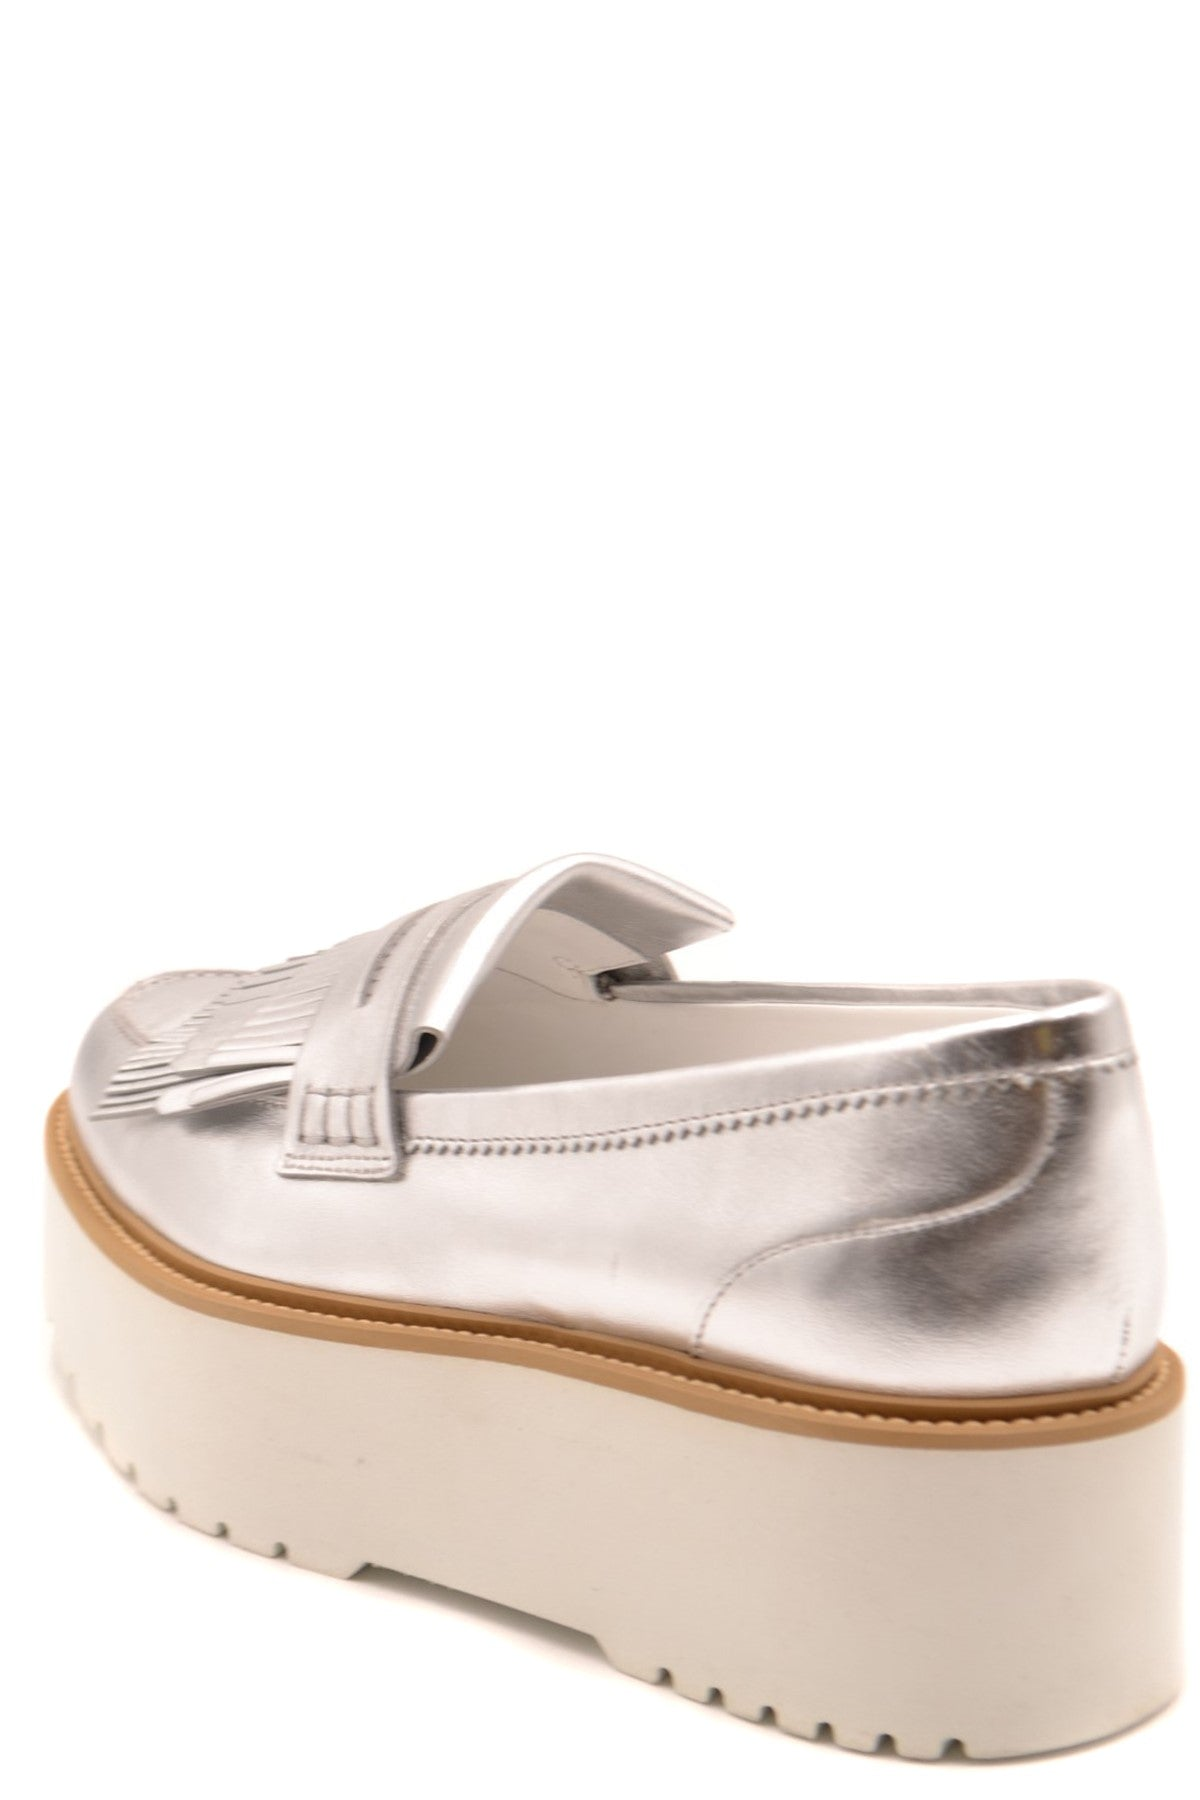 Shoes Hogan-Women's Fashion - Women's Shoes - Women's Sandals-Product Details Terms: New With LabelMain Color: SilverType Of Accessory: ShoesSeason: Spring / SummerMade In: ItalyGender: WomanSize: EuComposition: Leather 100%Year: 2020Manufacturer Part Number: Hxw3550Af10Sv0B200-Keyomi-Sook